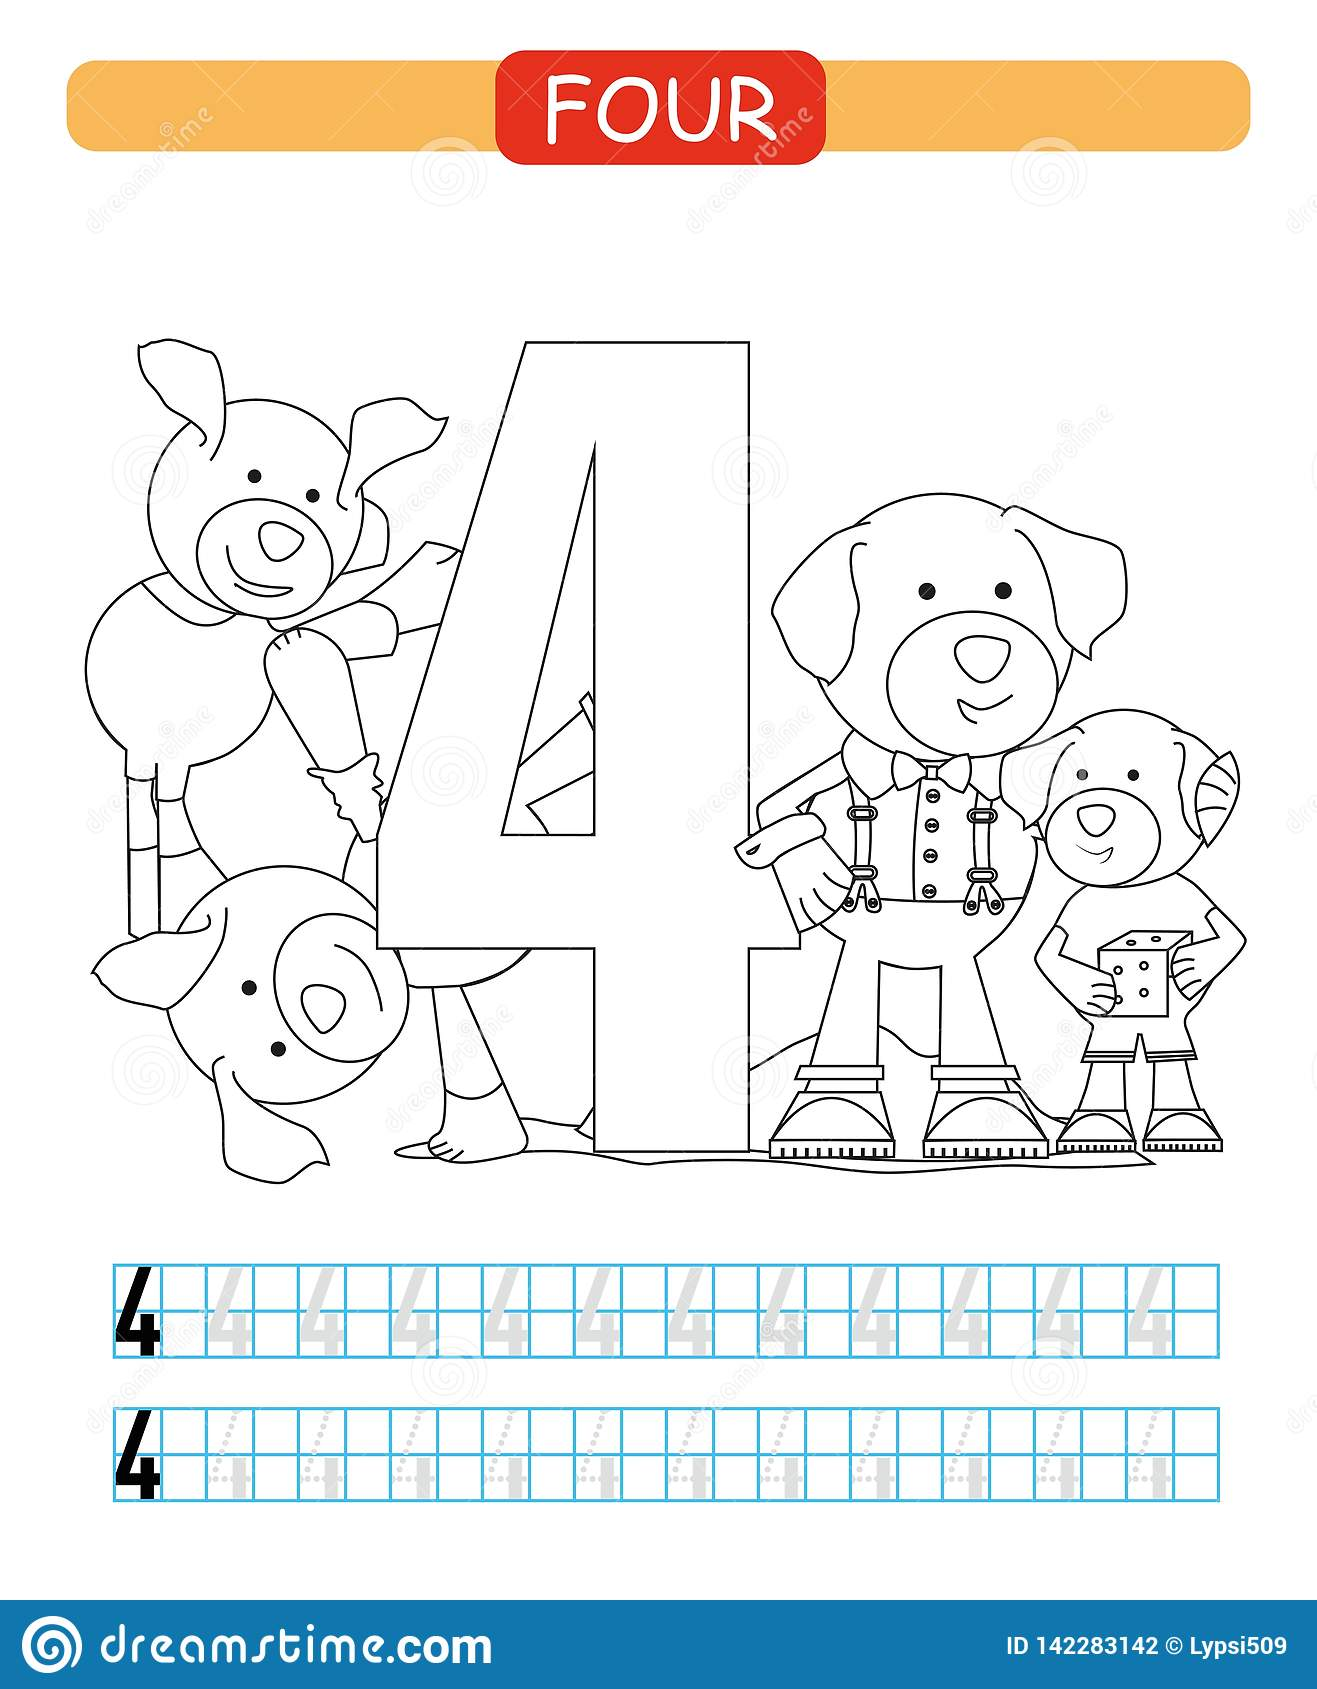 Four Learning Number 4 Coloring Printable Worksheet For